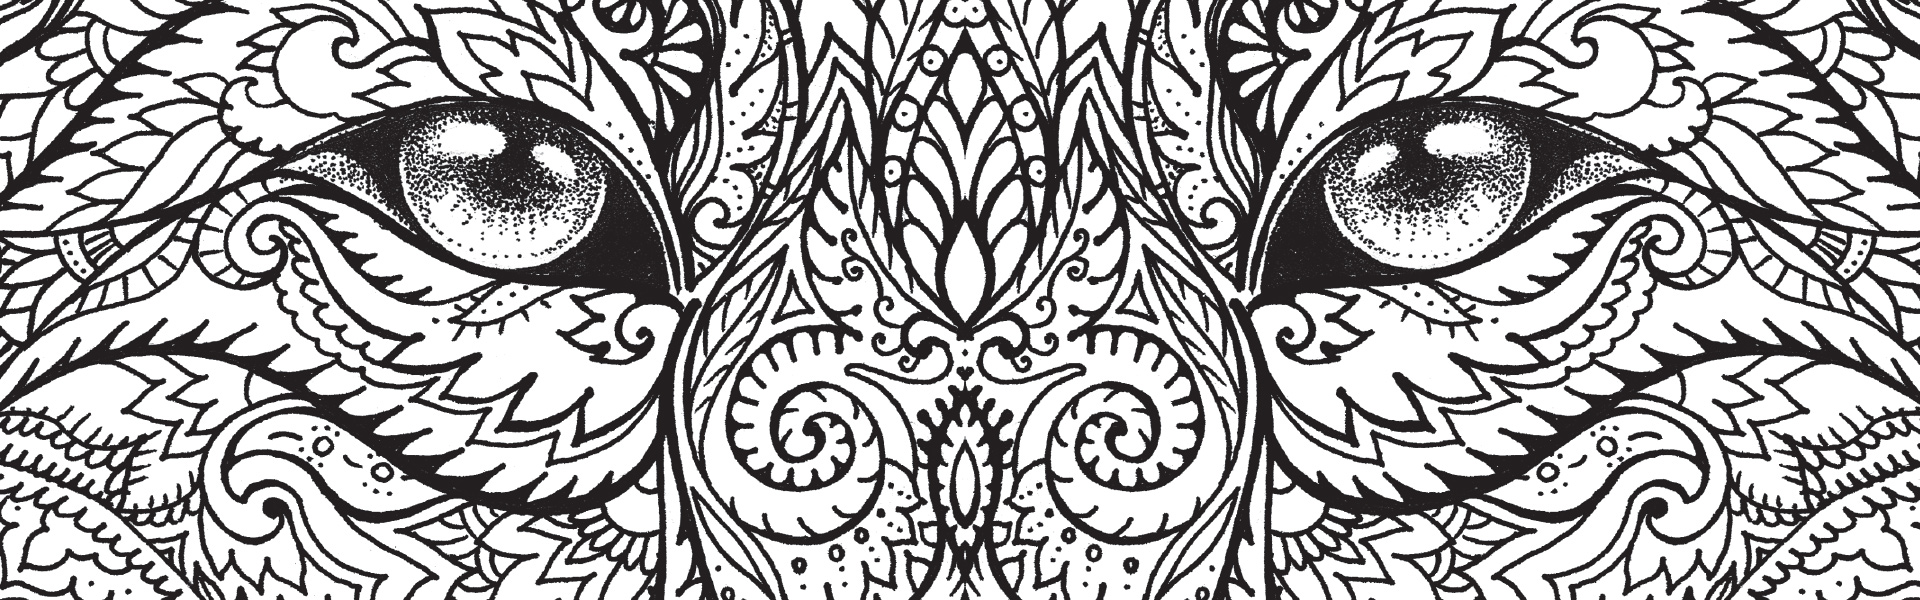 The Macmillan Jungle Book Colouring Book Free Wolf Pattern ...